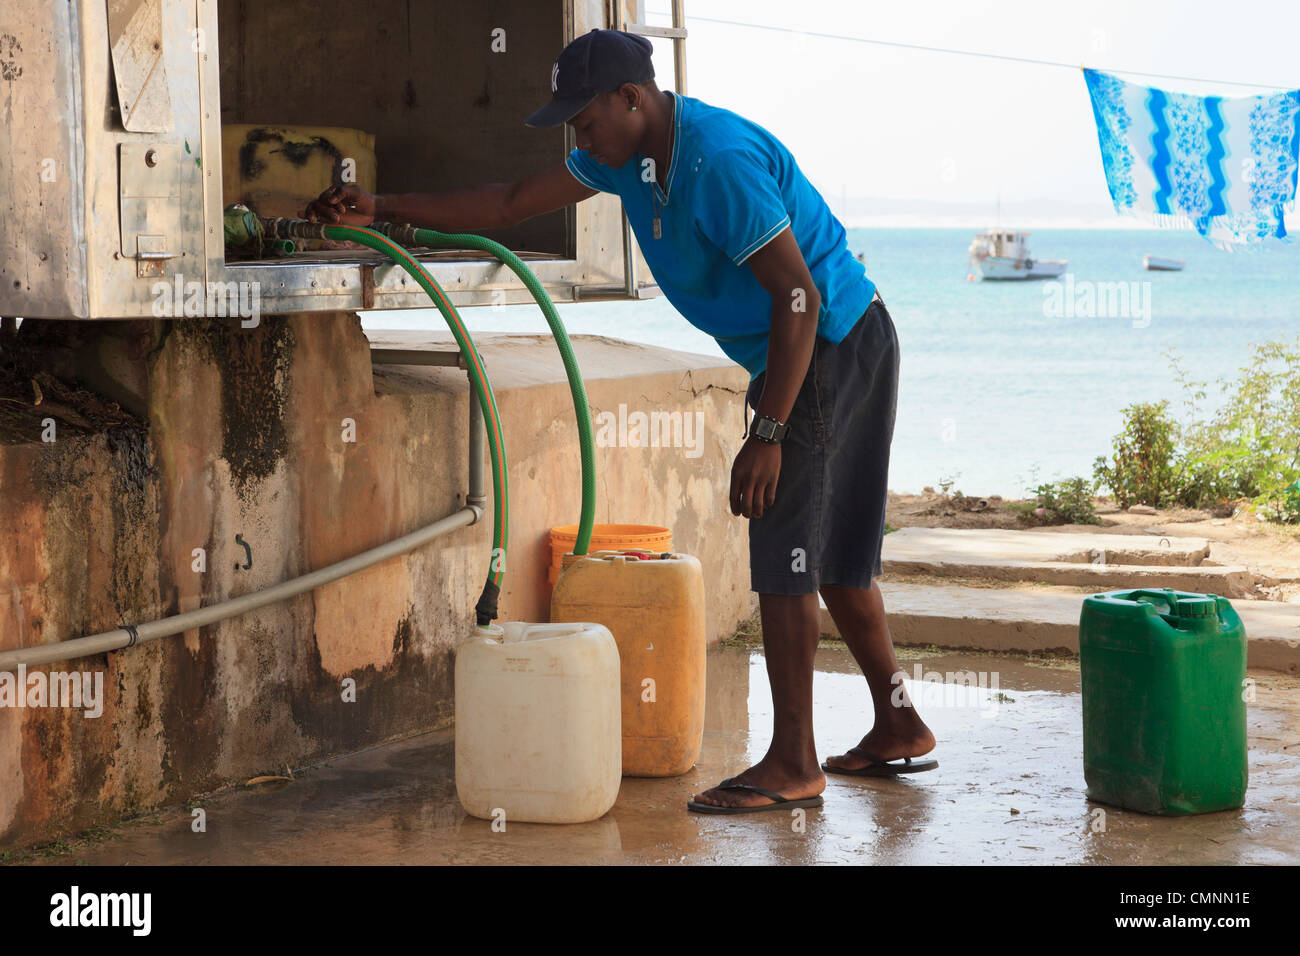 Local man with containers for collecting desalinated fresh drinking water from a bowser. Sal Rei, Boa Vista, Cape - Stock Image